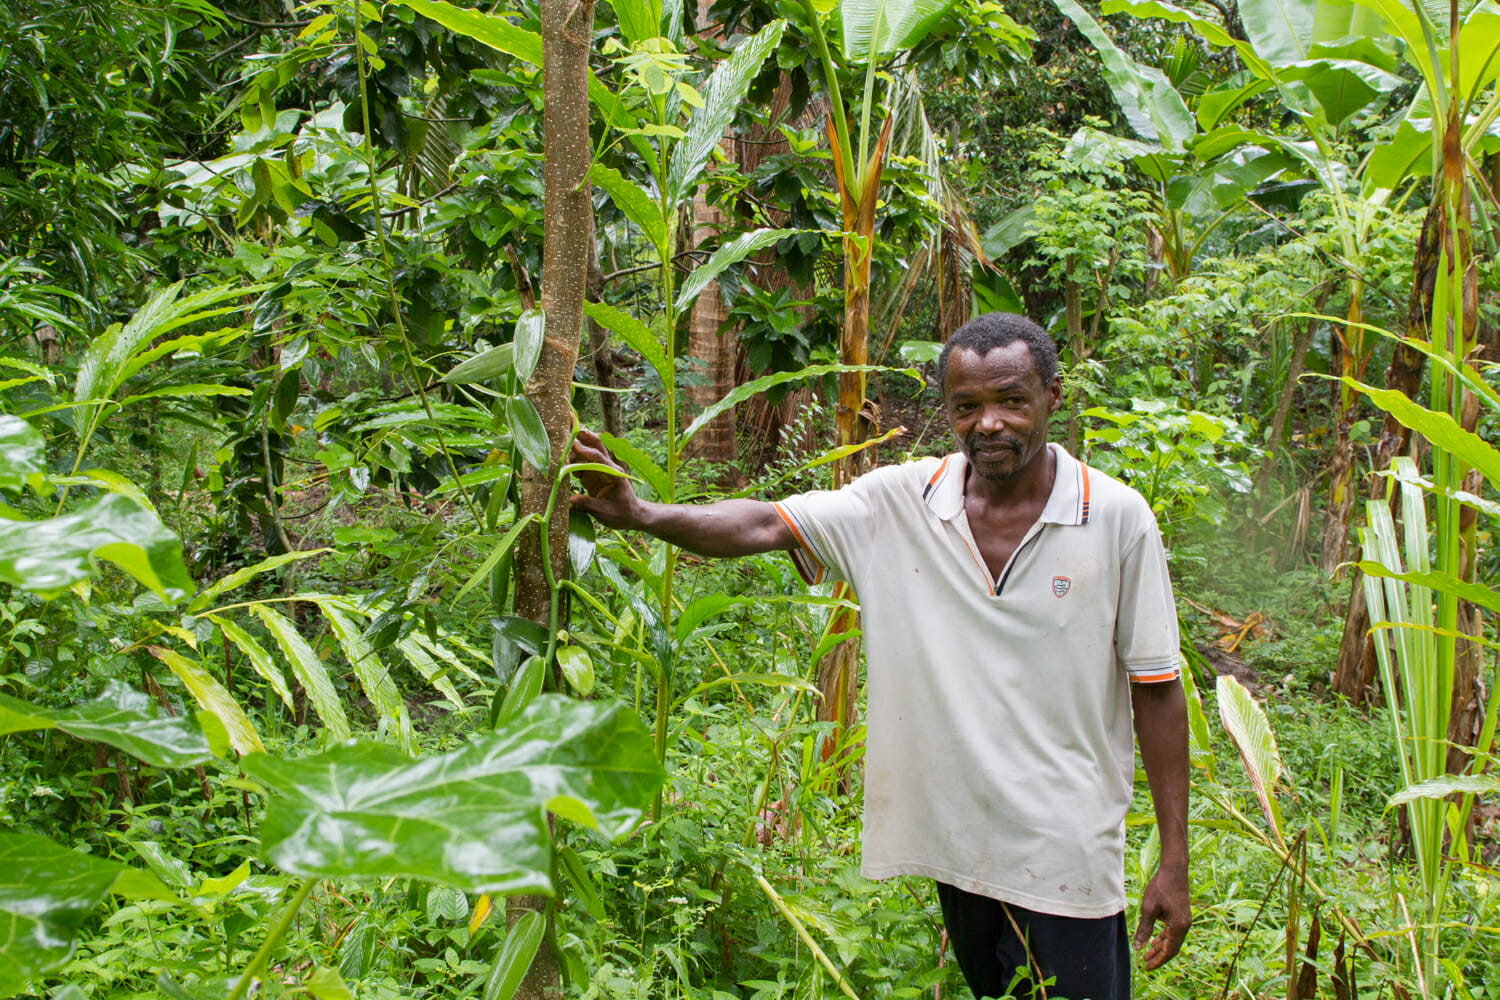 Hamad Mwatanii stands next to vanilla vines and trees in agroforest